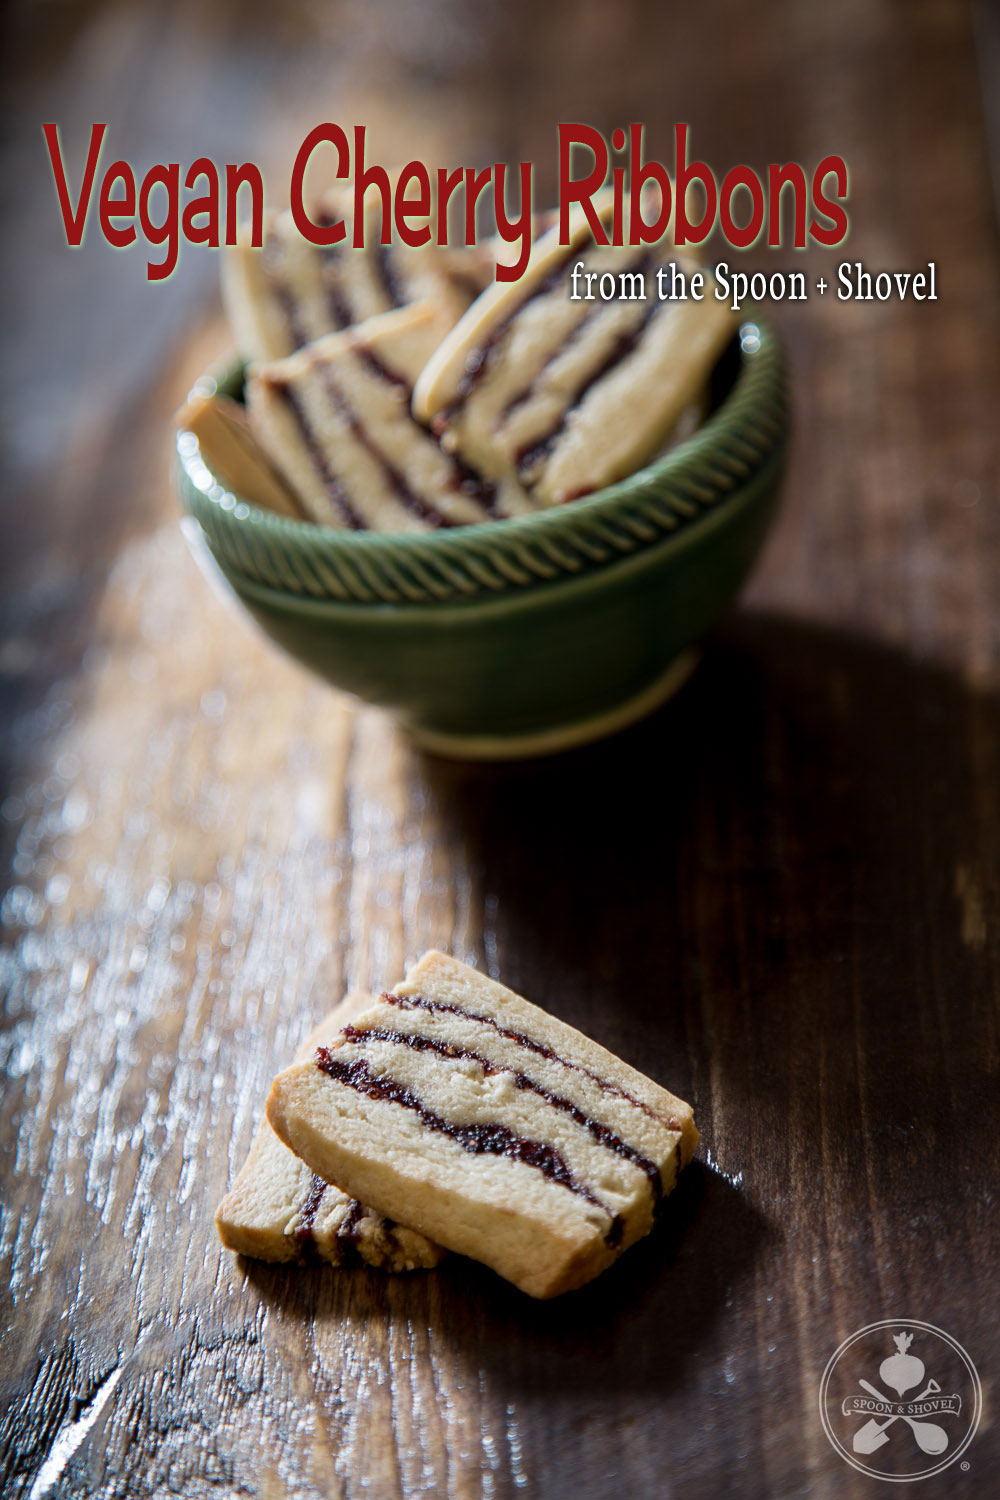 Vegan cherry ribbon cookies from The Spoon + Shovel